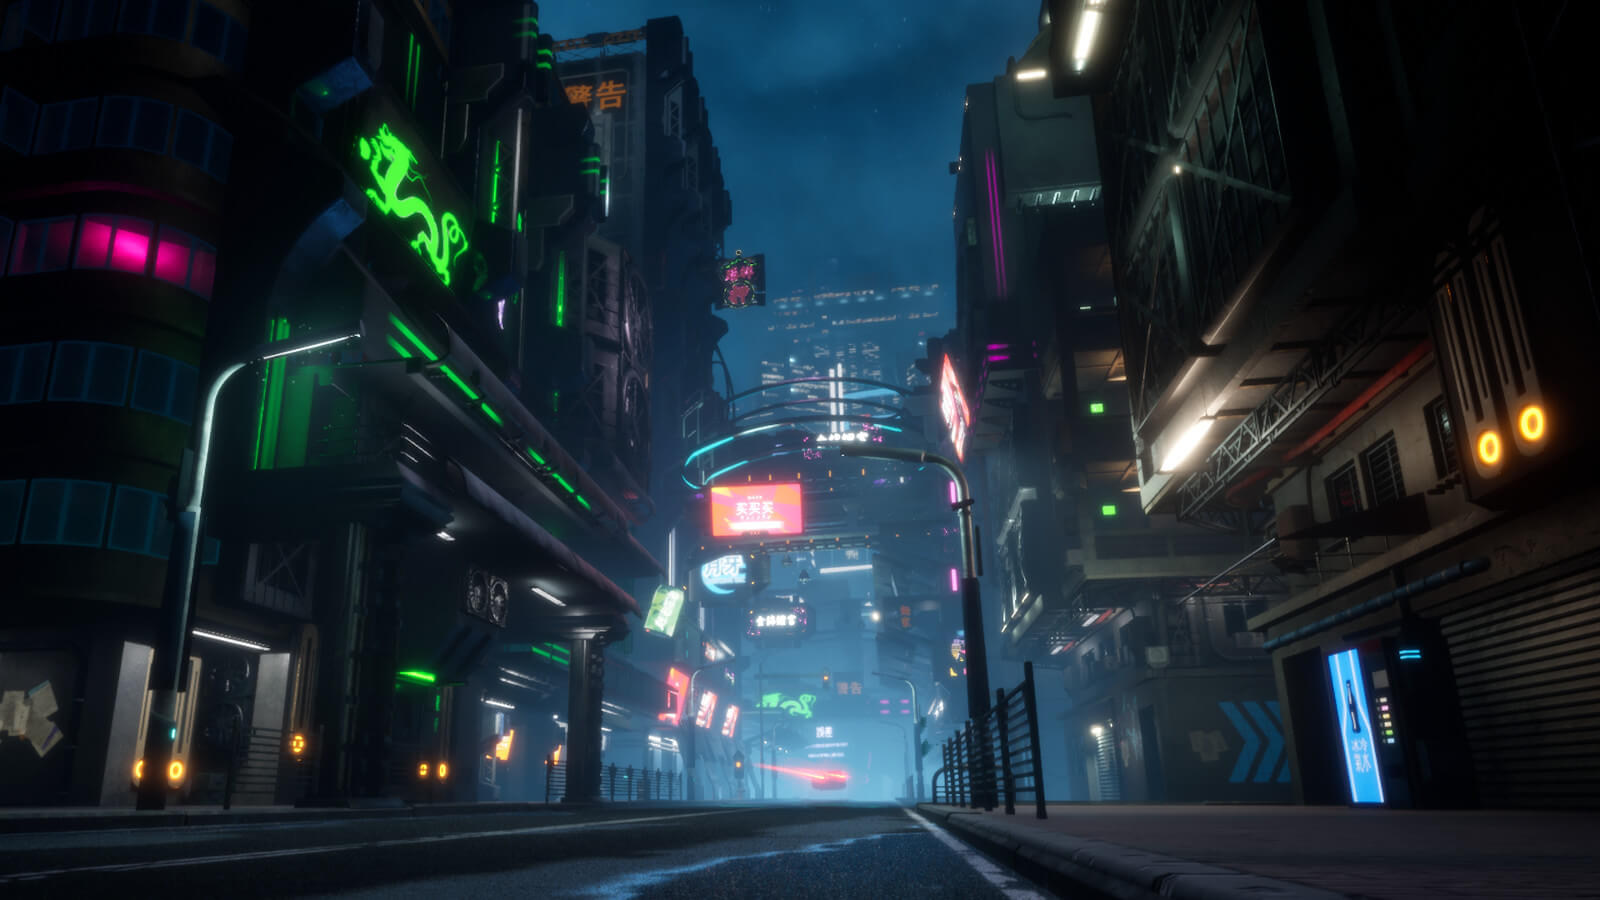 Futuristic city street at night